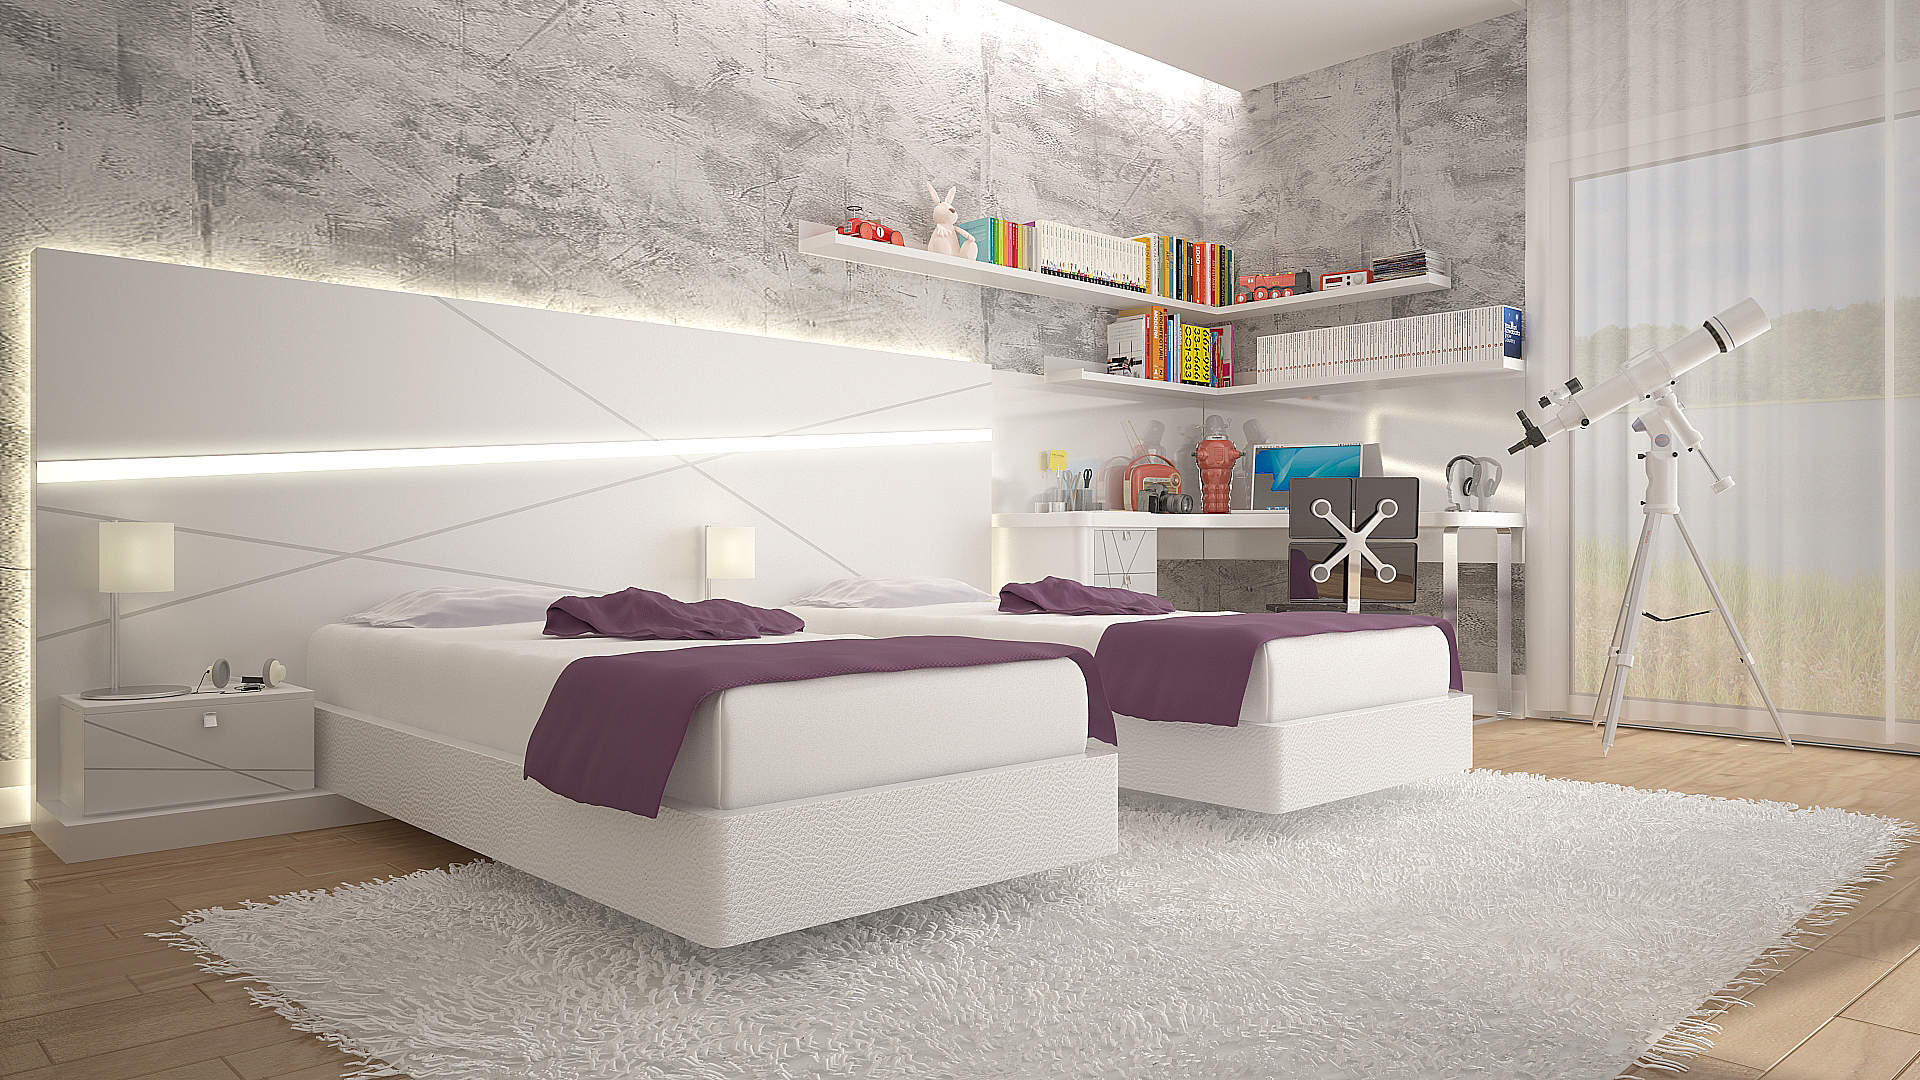 young_room_7_by_akcalar-d6696b0